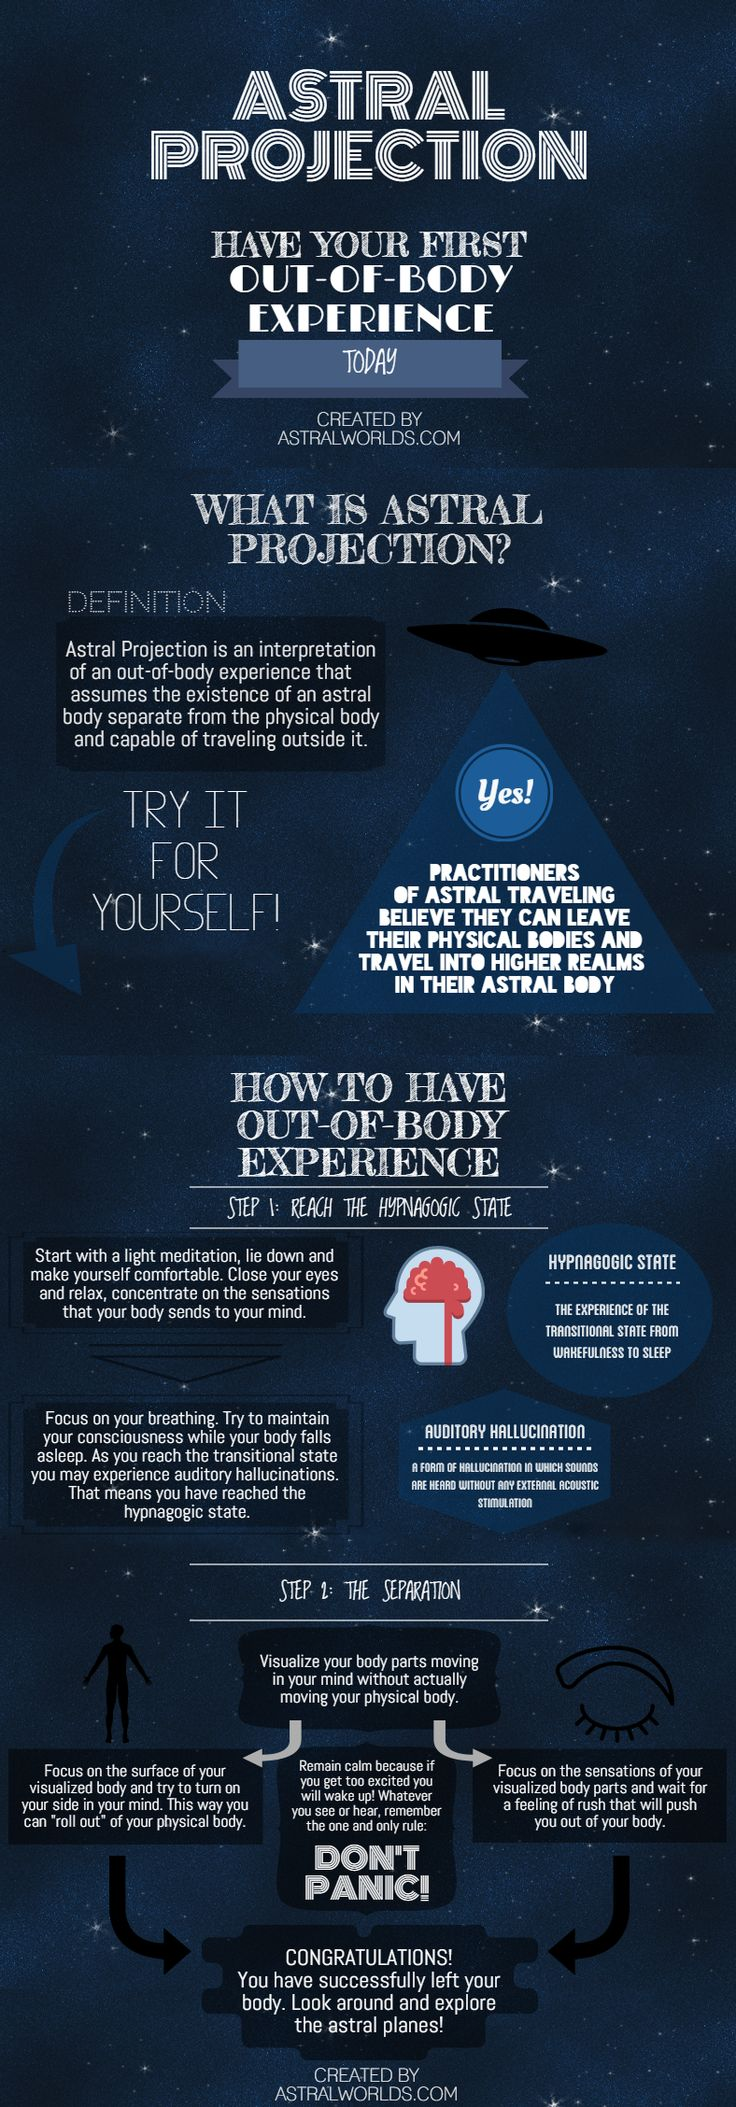 consciouspanda.com  Infographic on astral projection. Easy steps to have your first out-of-body experience today. Learn more on astralworlds.com #infographic #astralprojection #outofbodyexperience